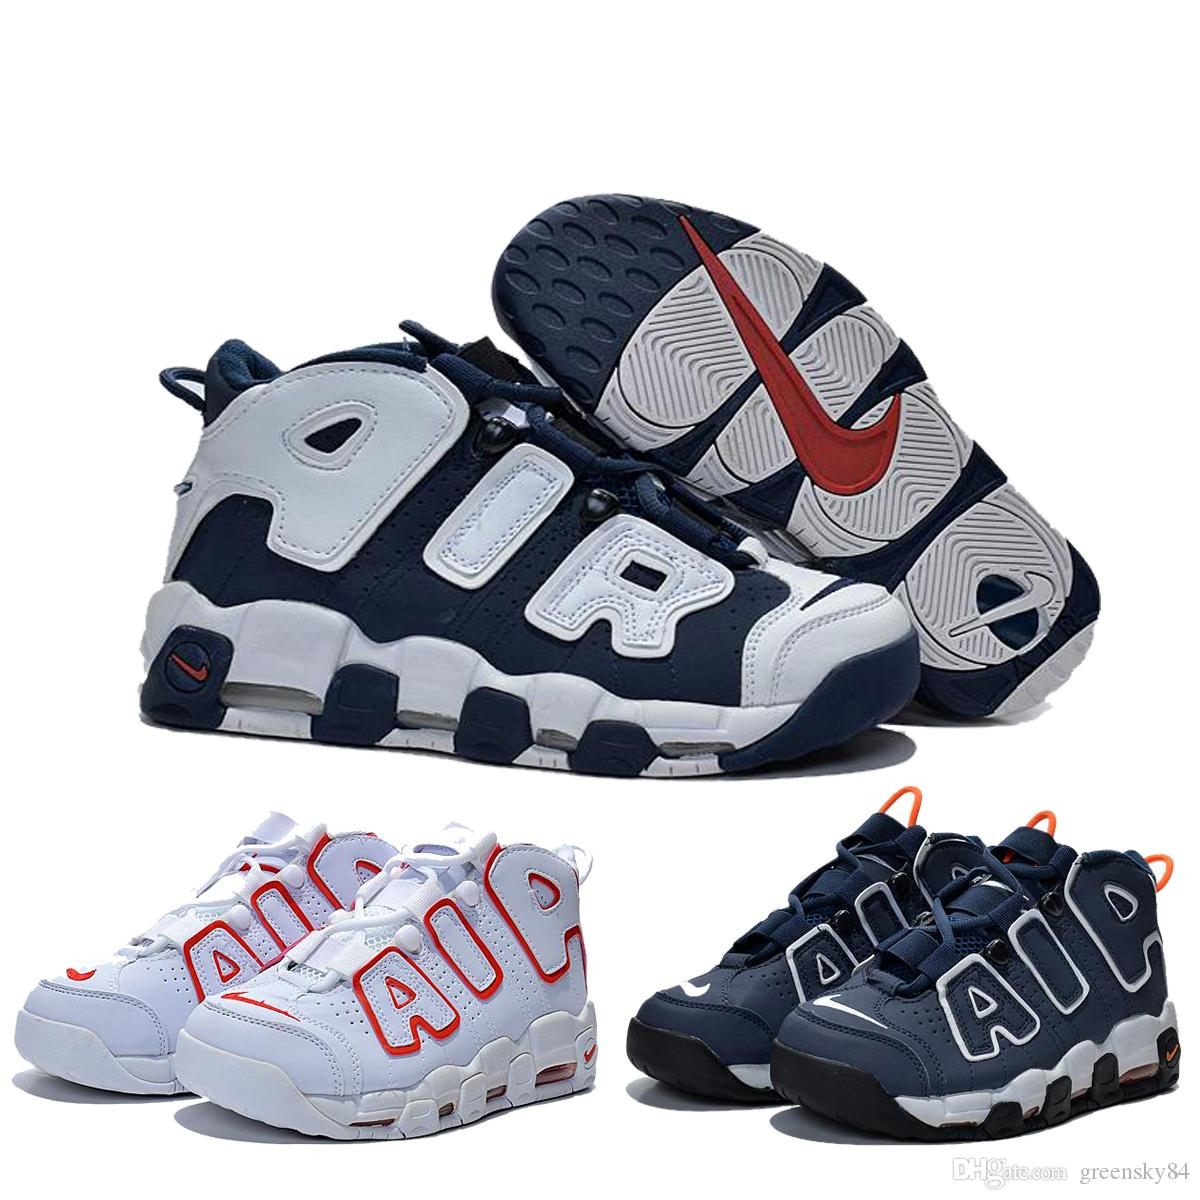 size 40 ed8df 923c5 Nike Air More Uptempo Olympic Pippen Retro Women S Basketball Shoes,Original  Cheap Air Max Olympic Basketball Shoes For Male New Arrivals Shoes Men  Tennis ...